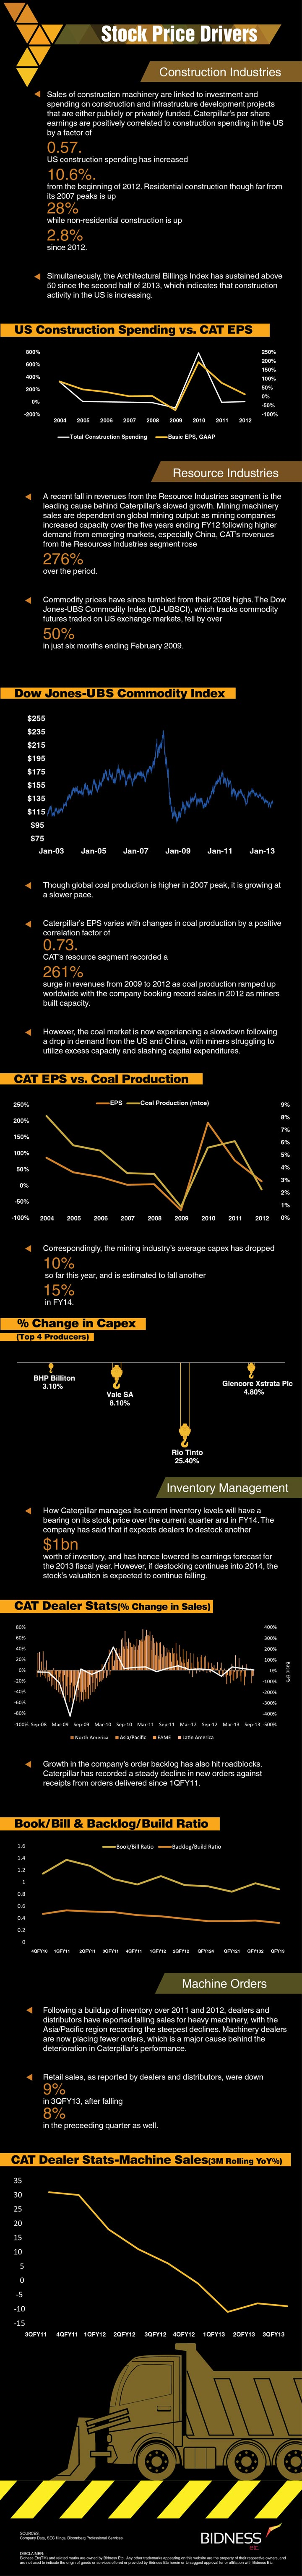 caterpillar cat stock price drivers Infographics